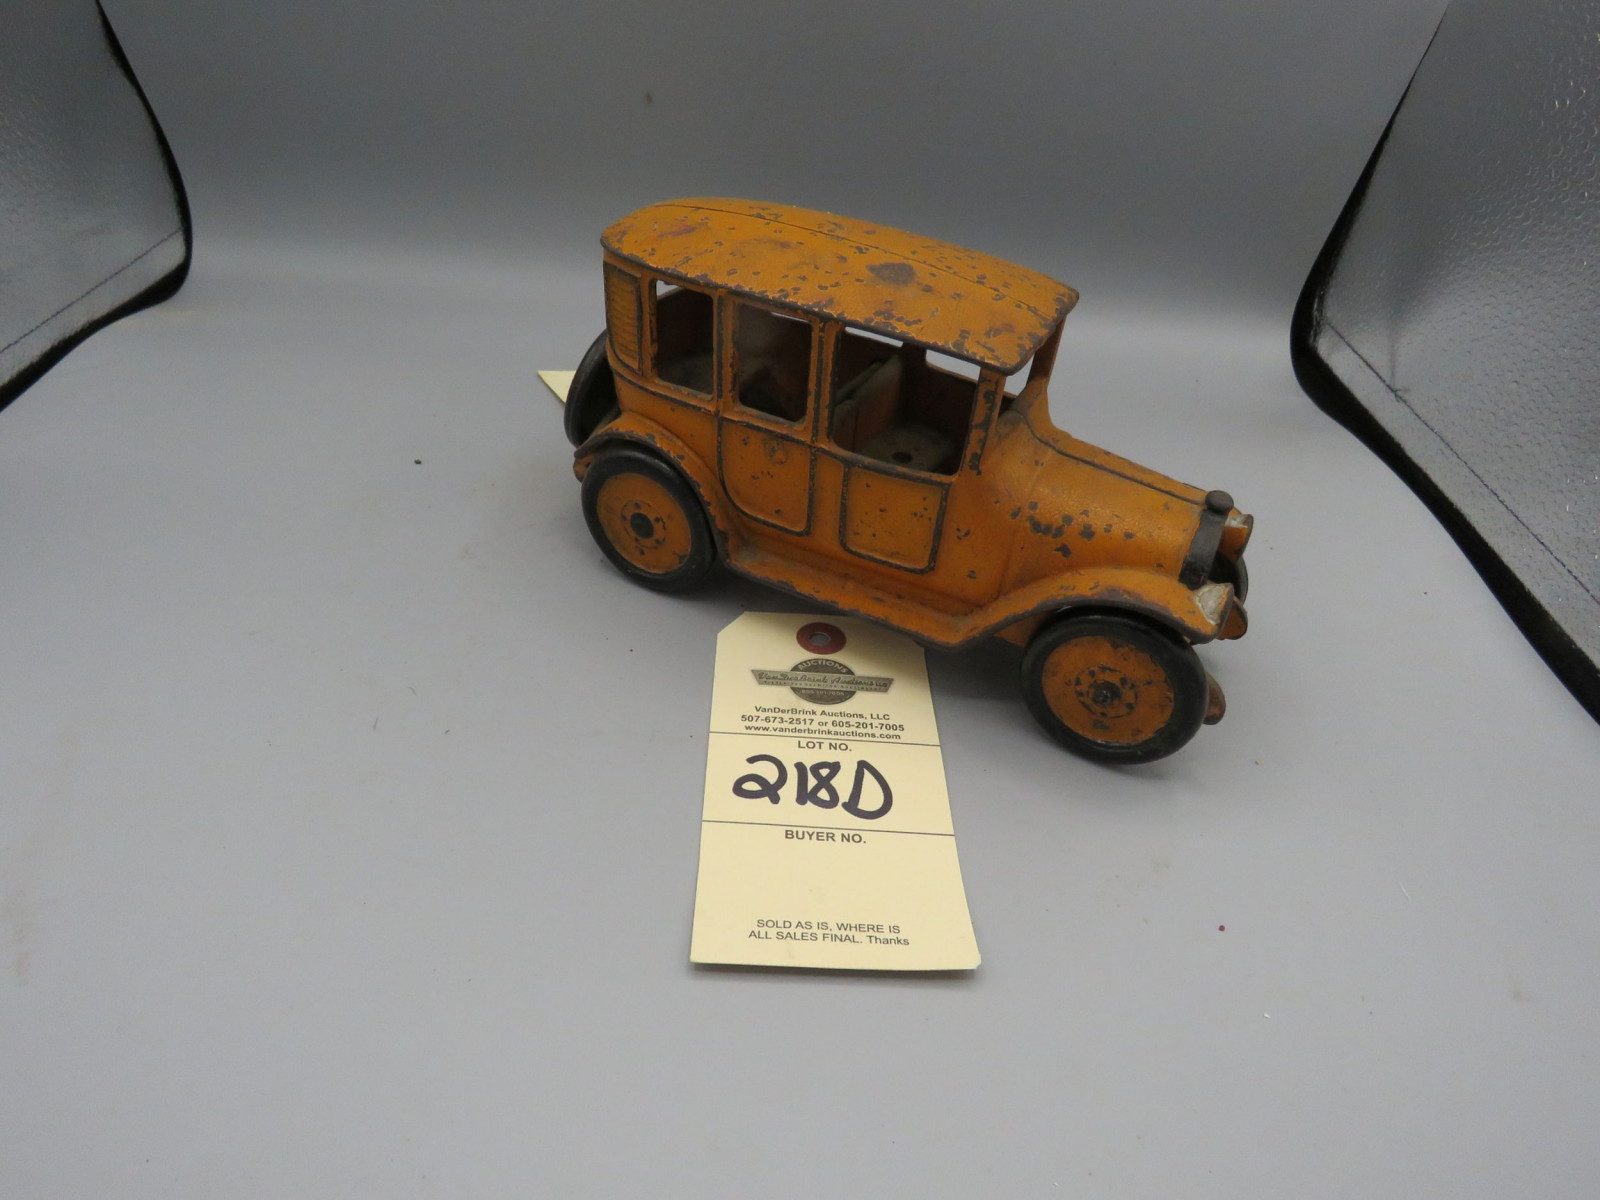 Arcade Cast iron Sedan @1923 Approx. 6 inches - Image 2